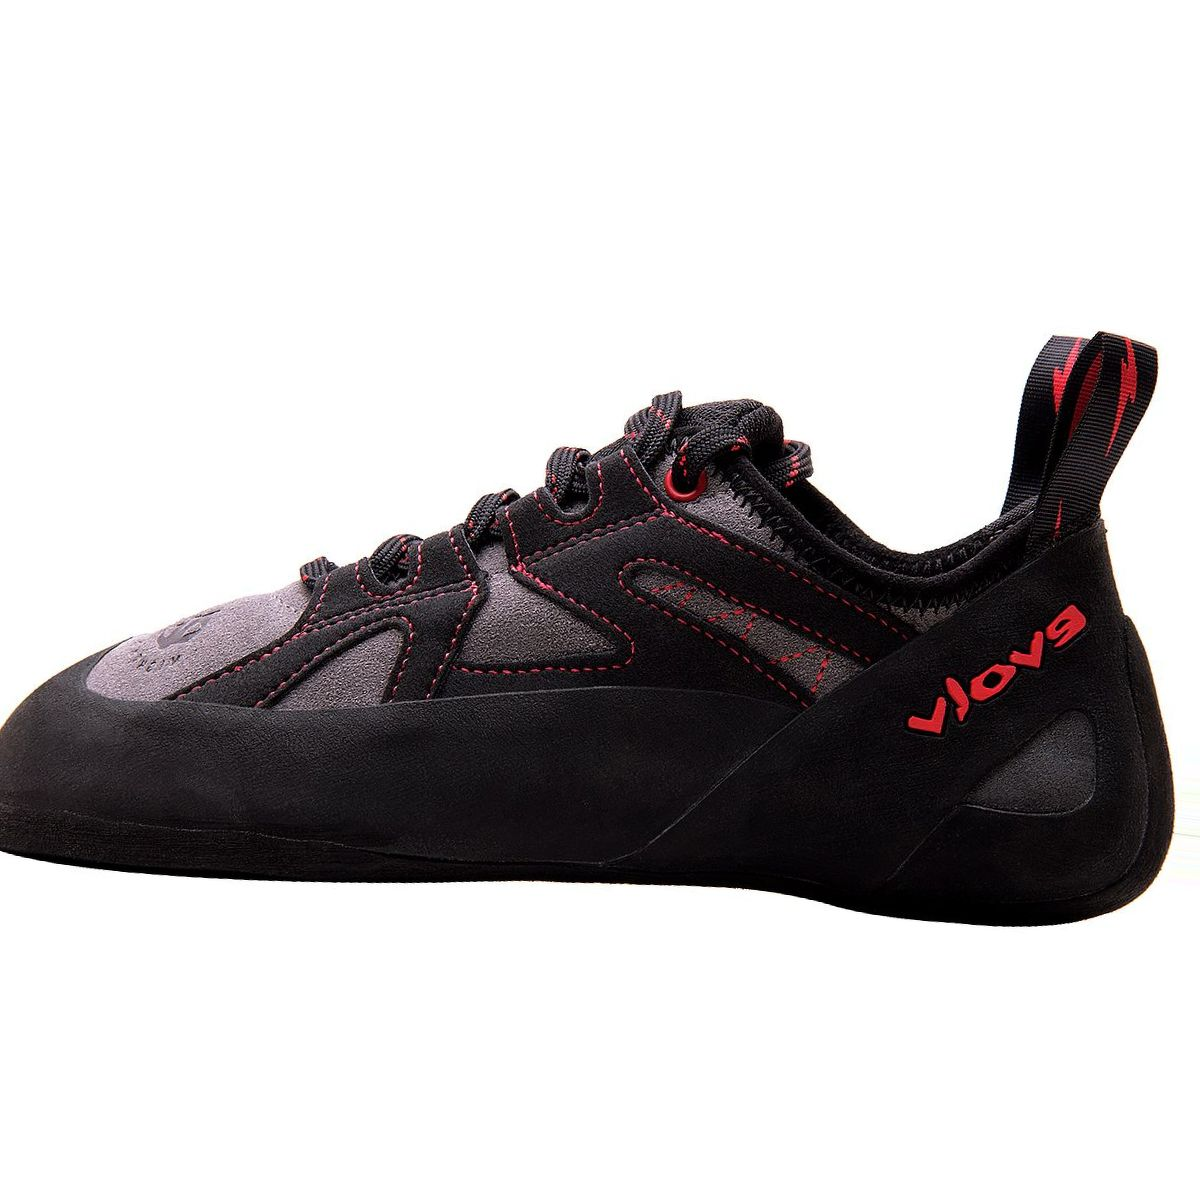 Evolv Nighthawk Climbing Shoe - Men's